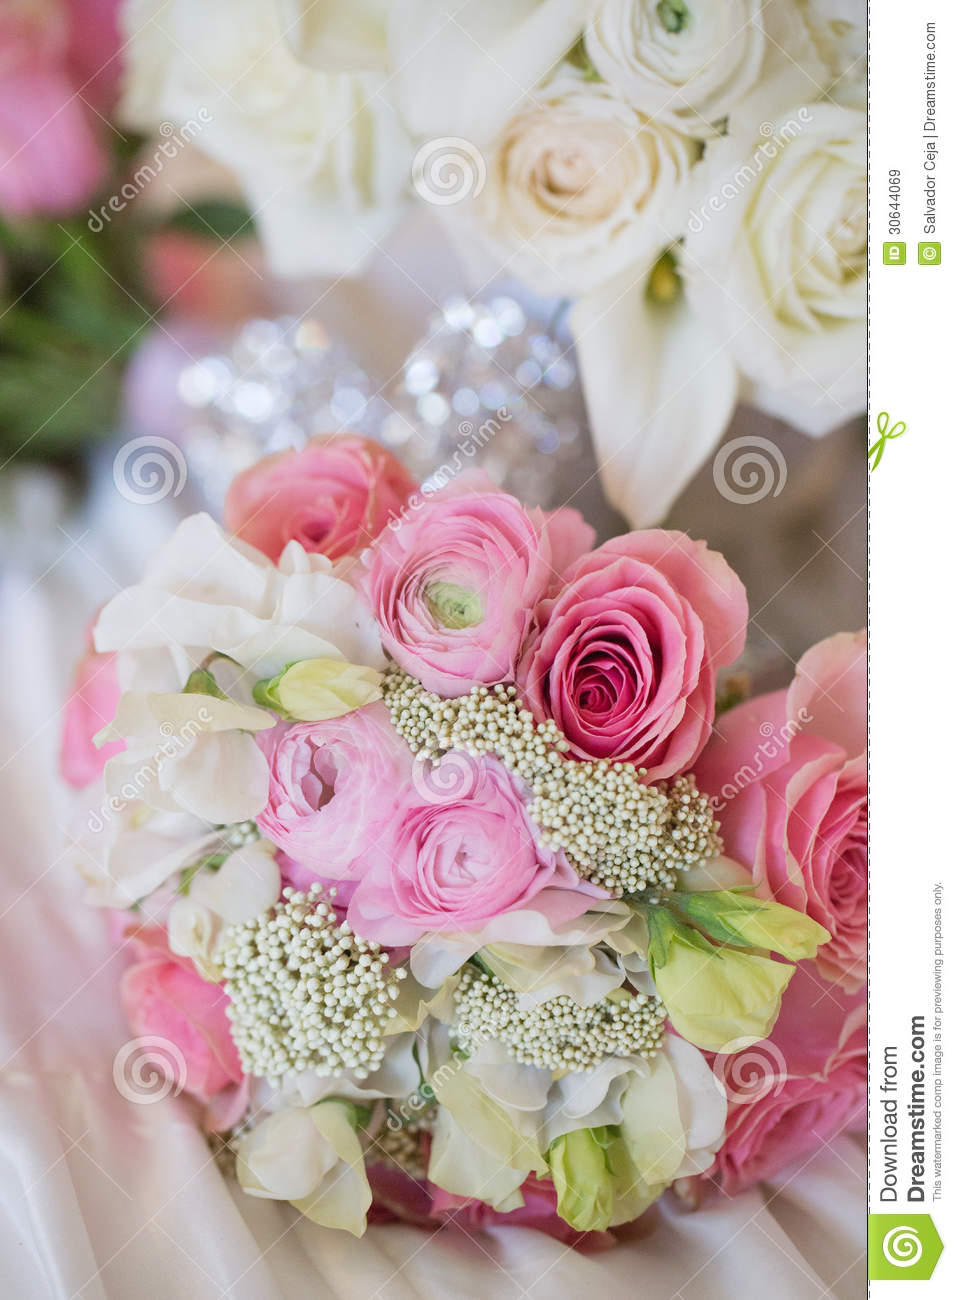 Wedding bouquet stock image. Image of marriage, pink - 30644069